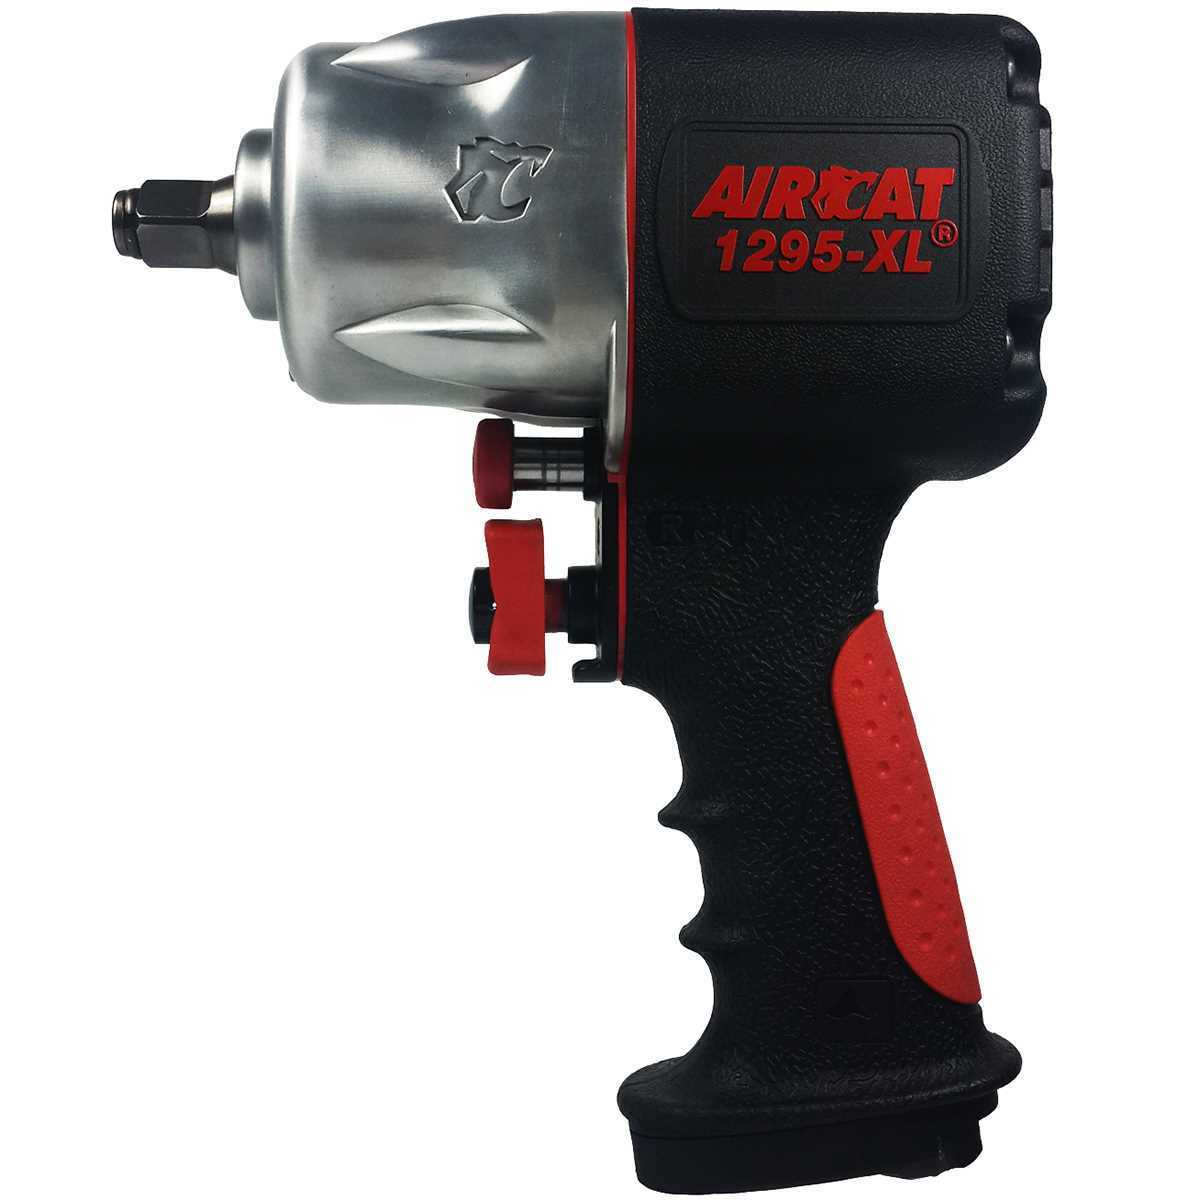 AirCat 1295-XL 1/2 Inch Drive Impact Wrench with FREE SHIPPING!!